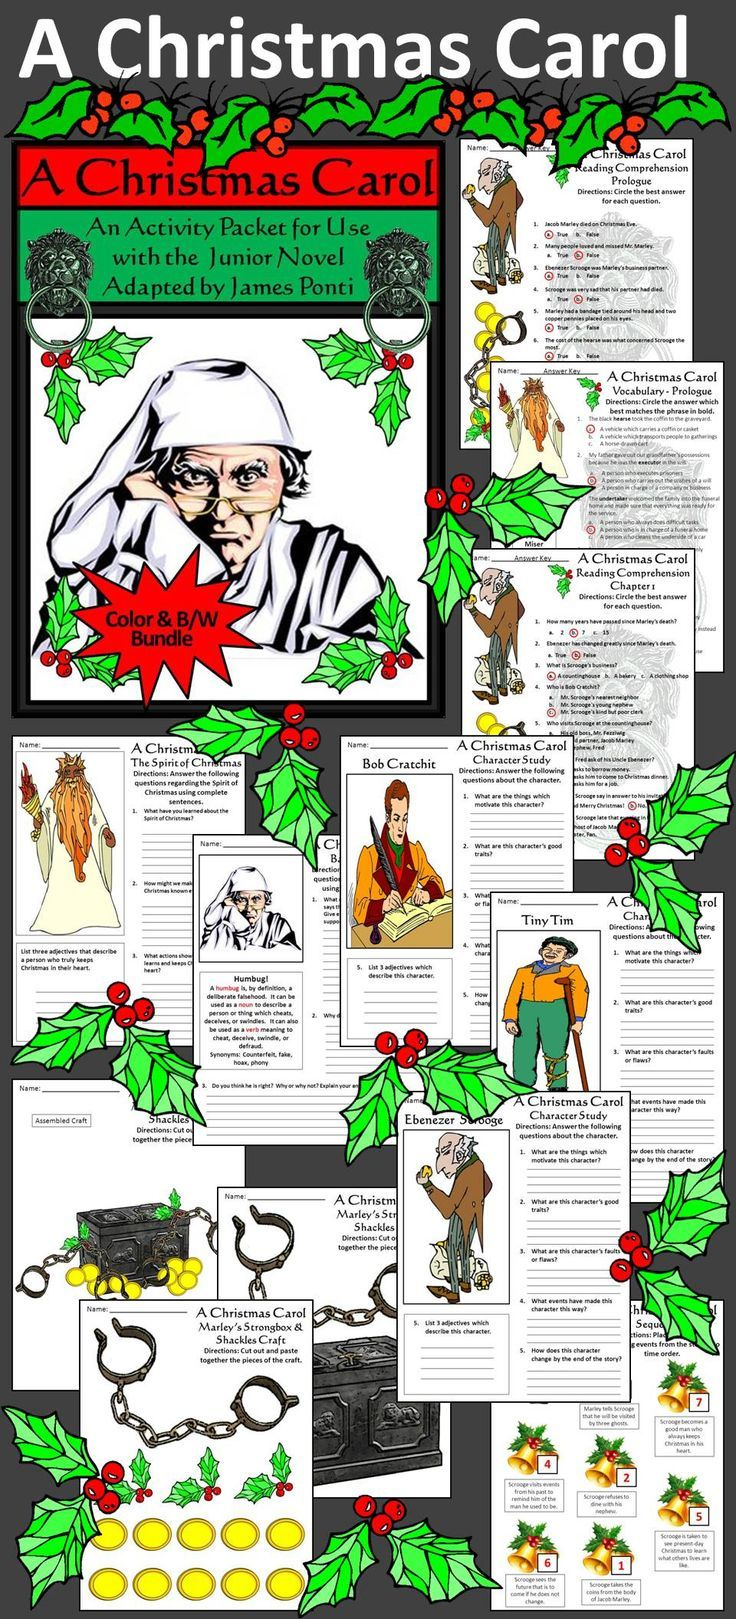 worksheet A Christmas Carol Worksheets christmas carol activity packet writing sequencing a complements the book junior novel adapted by james ponti based on charles d